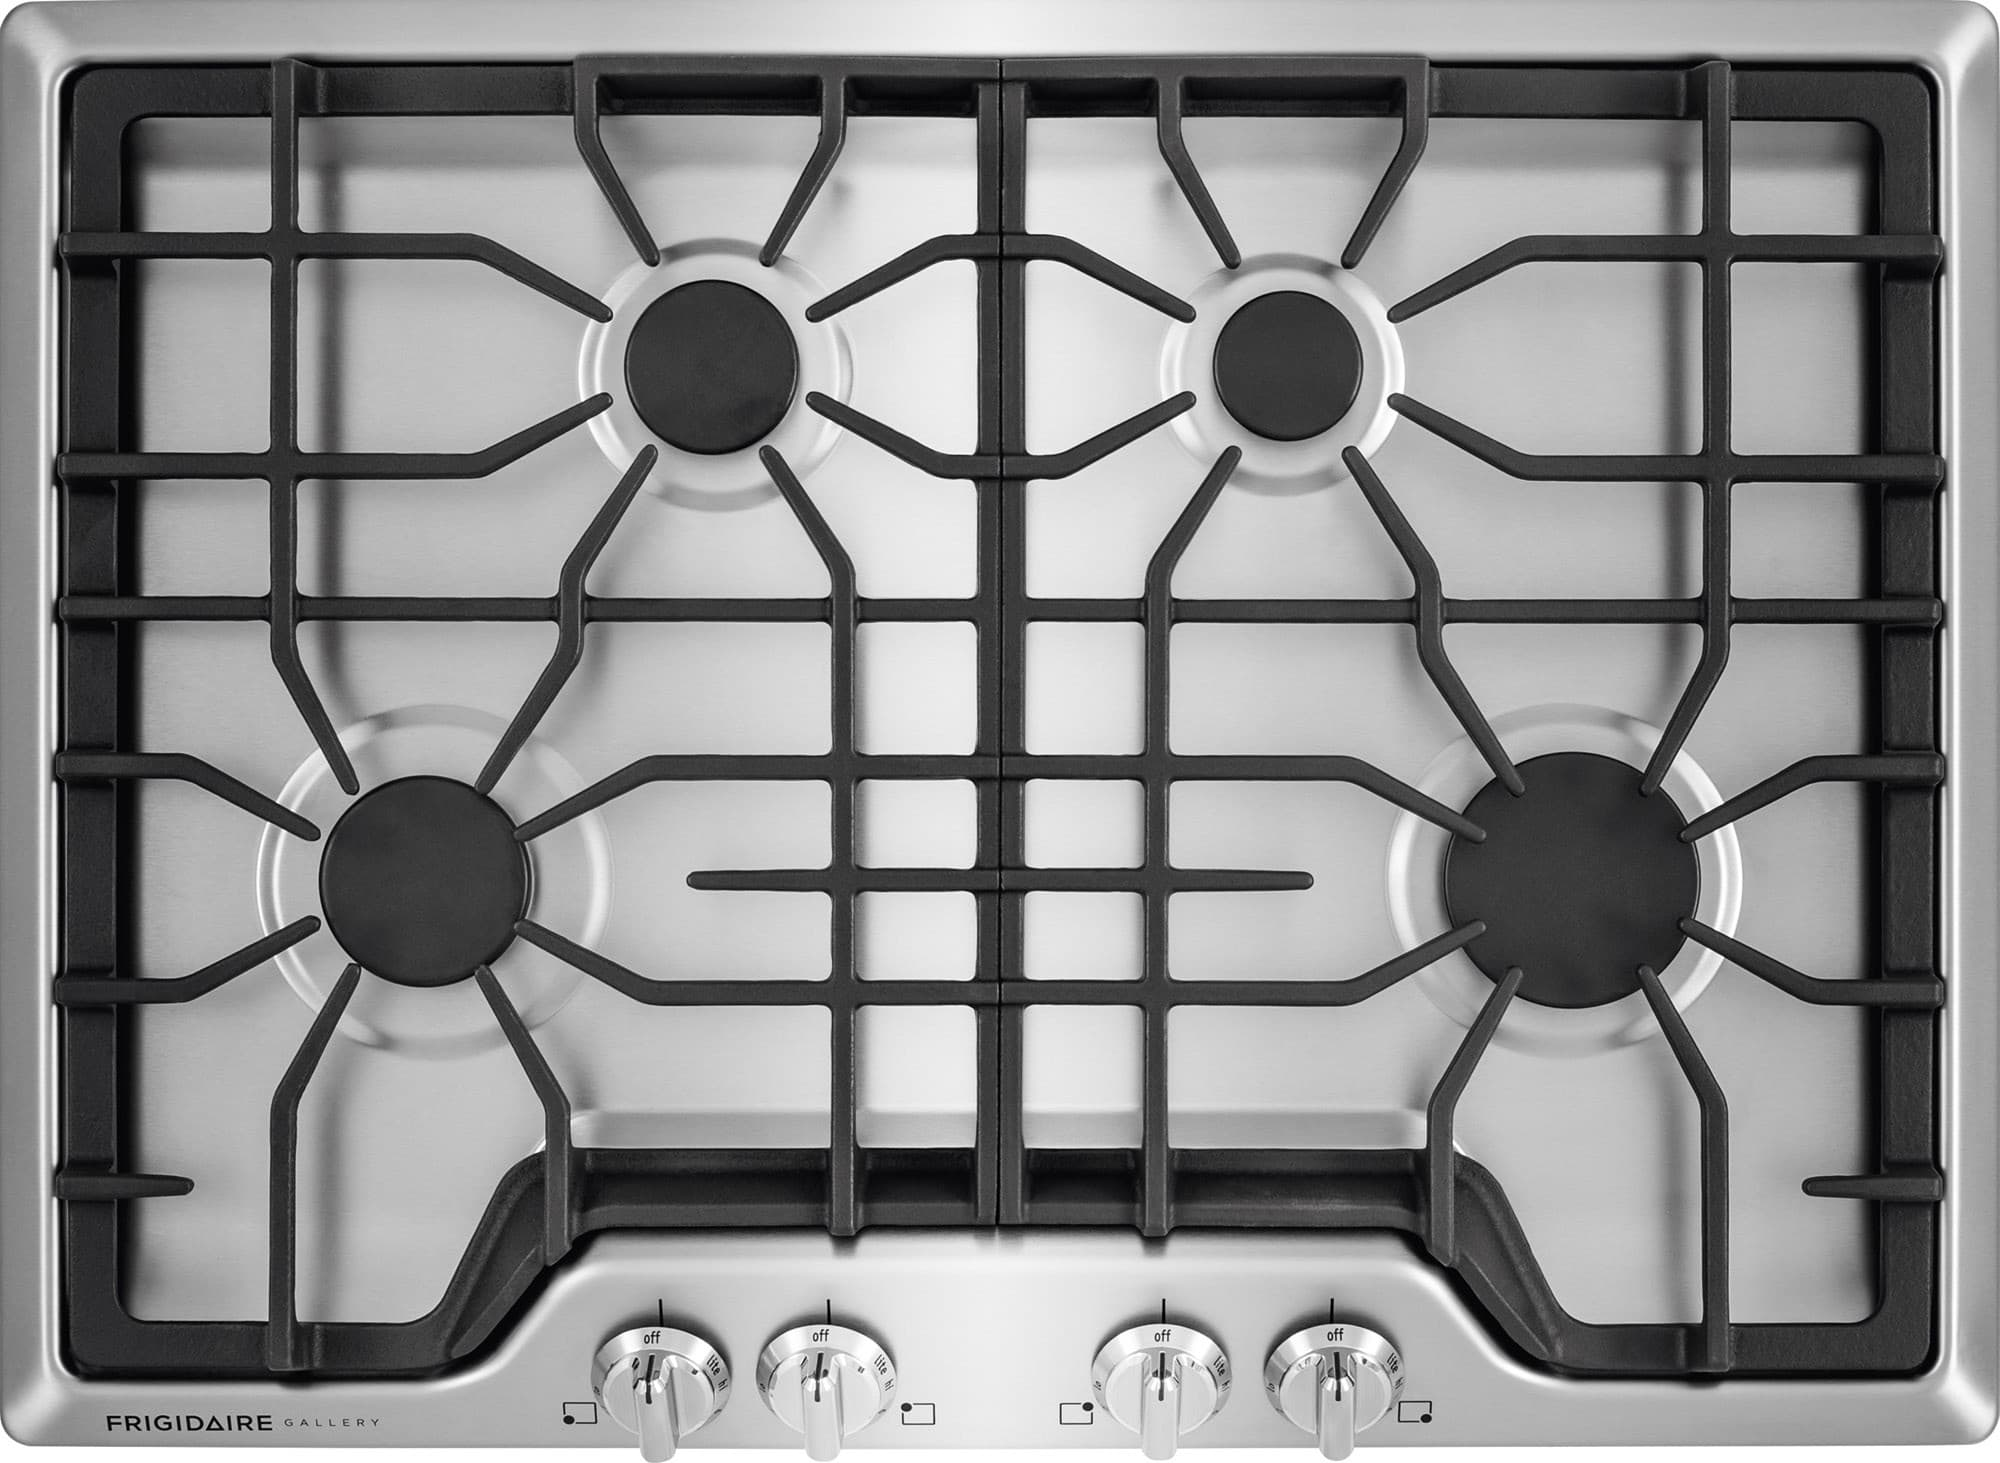 frigidaire fggc3045qs 30 inch gas cooktop with 4 sealed burners low simmer burner continuous dishwasher safe cast iron grates front angled - 30 Gas Cooktop